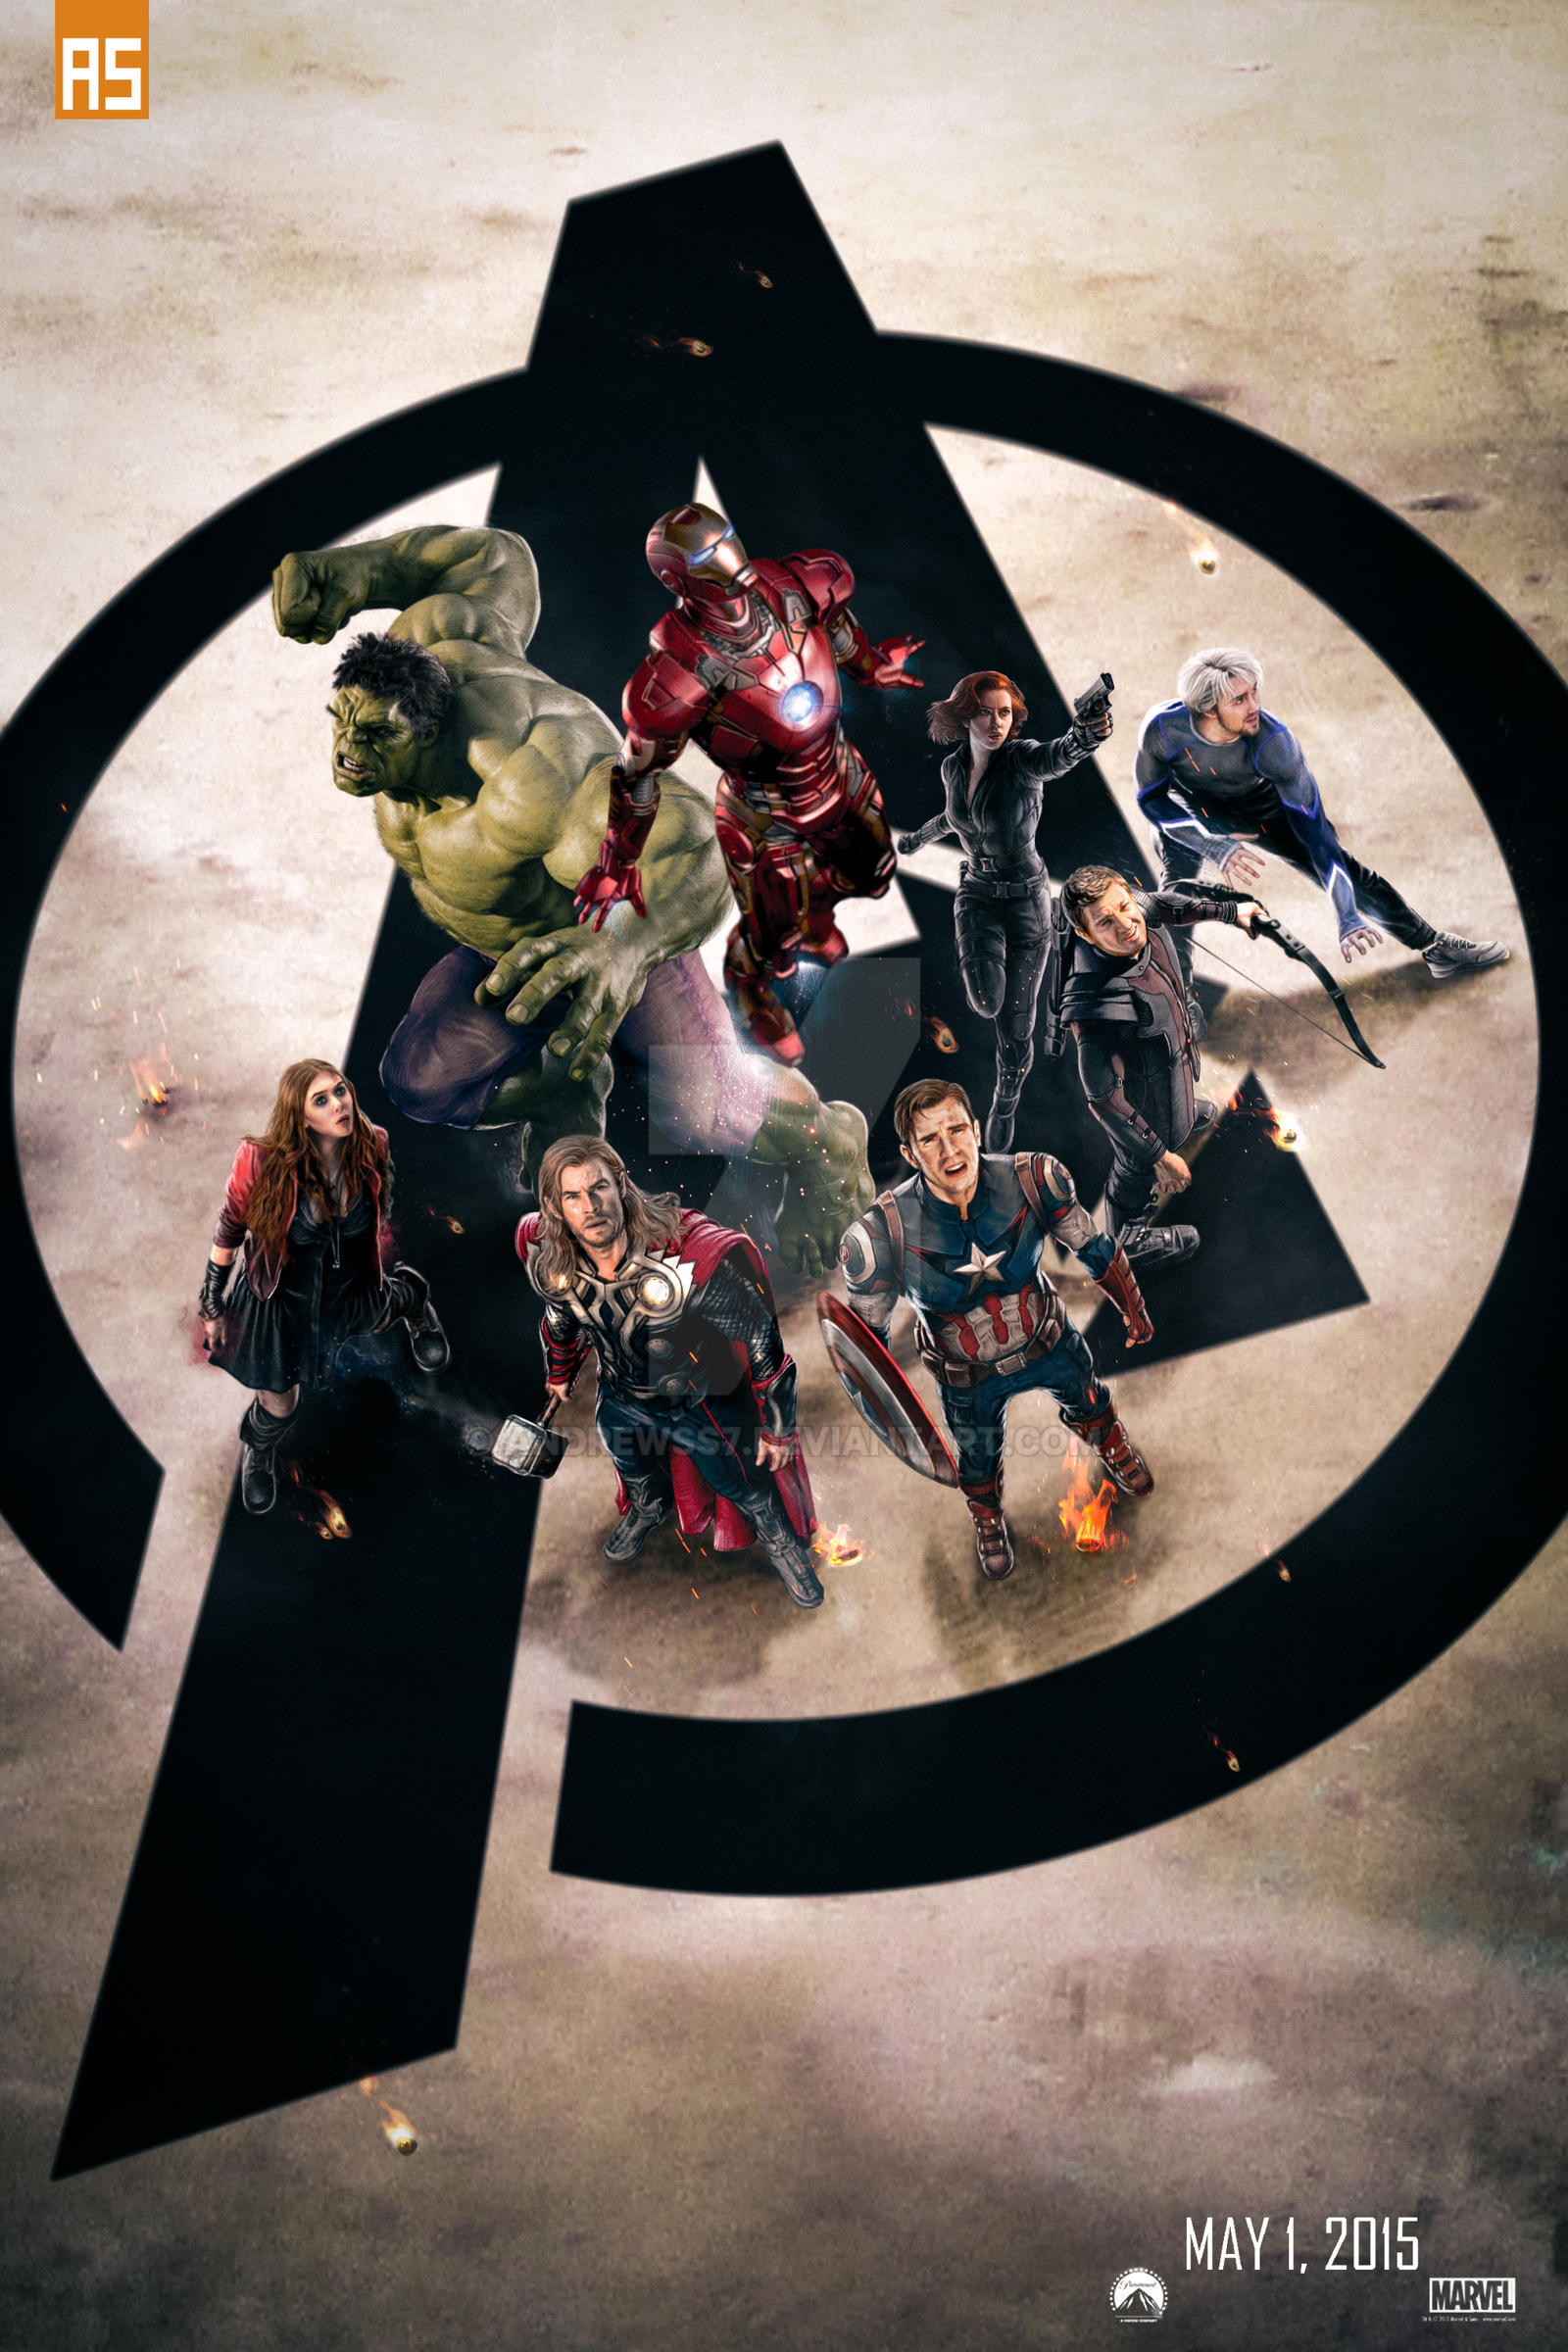 ''The Avengers: Age of Ultron'' poster